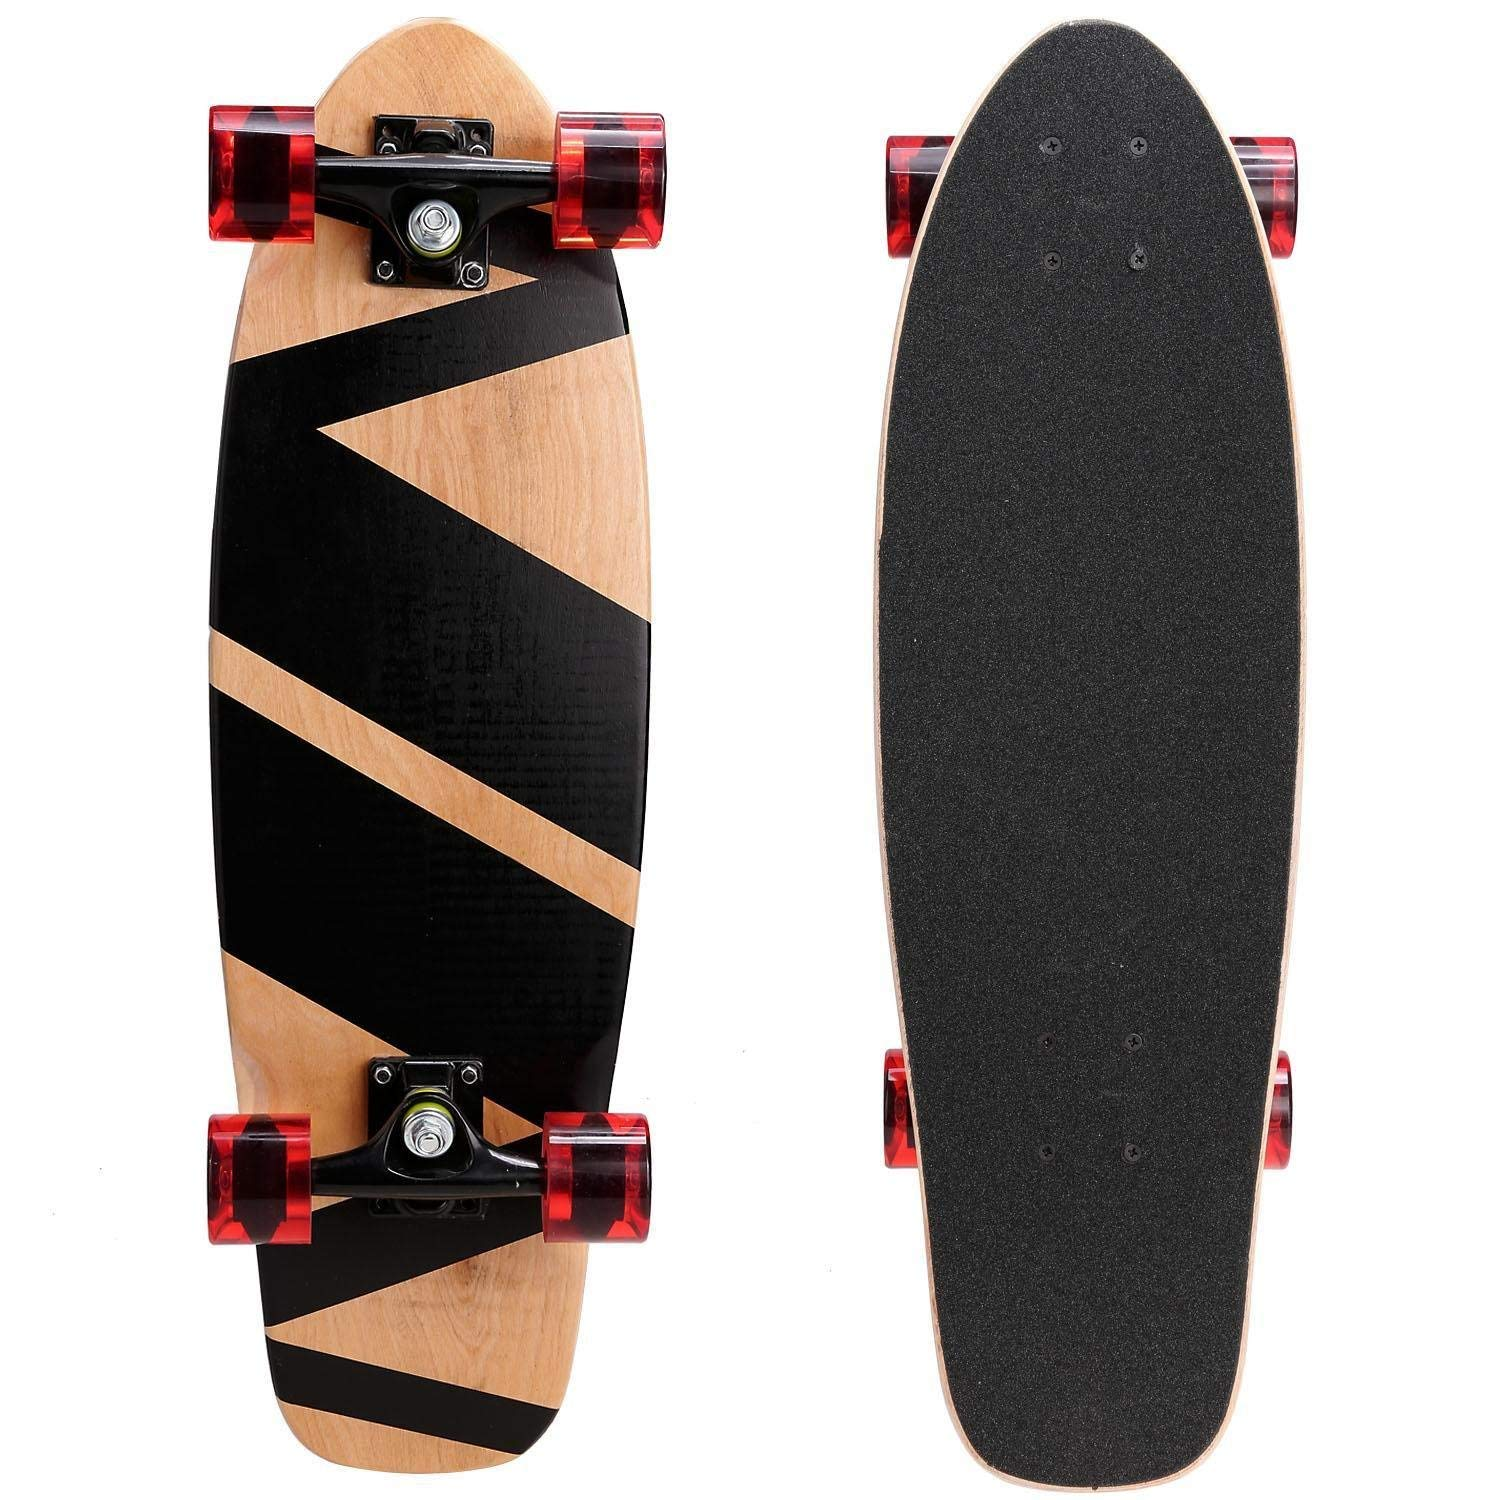 c62338ace2 Get Quotations · Keland Outdoor 27inch 9 Layers Maple Wooden Deck Skate  Board Cruiser Skateboard for Children Adult